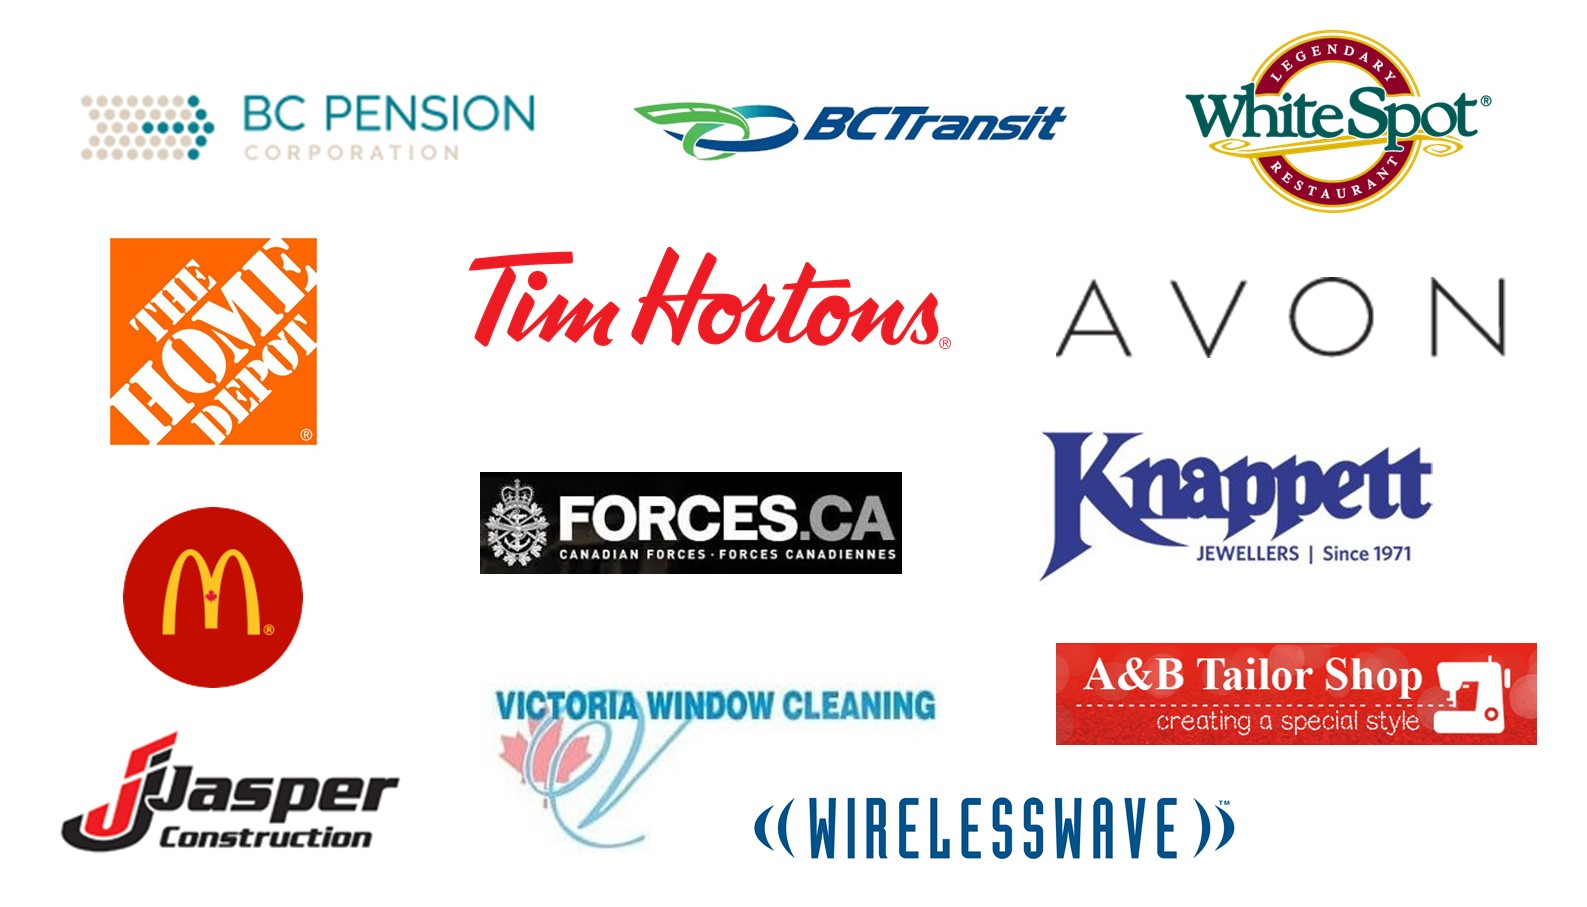 Victoria List of Exhibitors